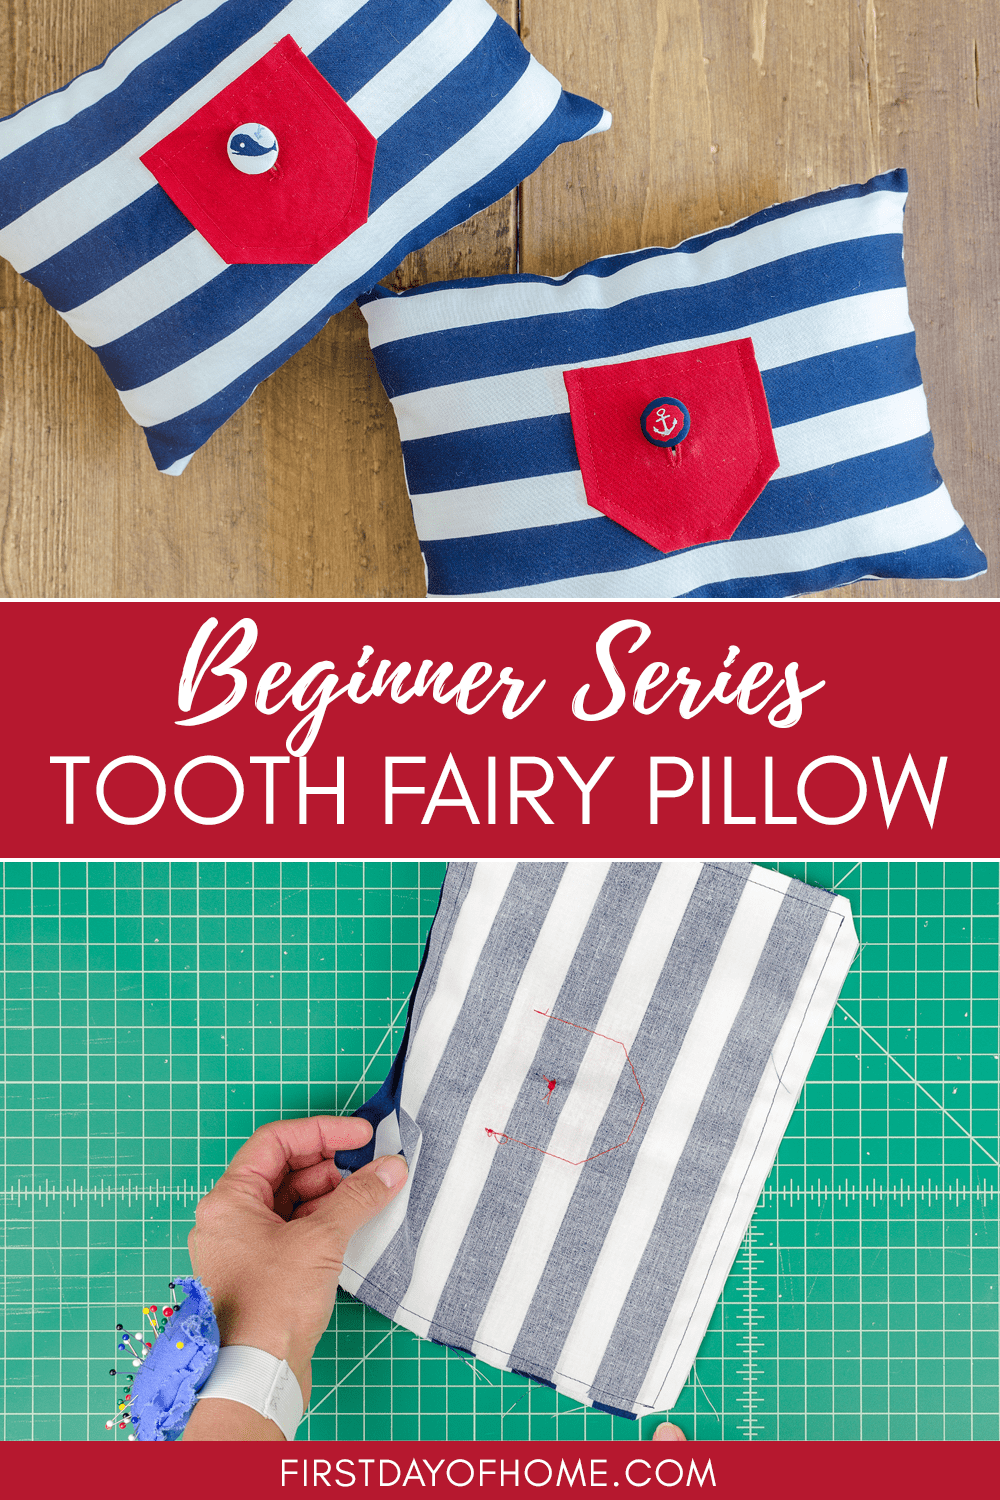 Easy tooth fairy pillow sewing tutorial with free pattern.